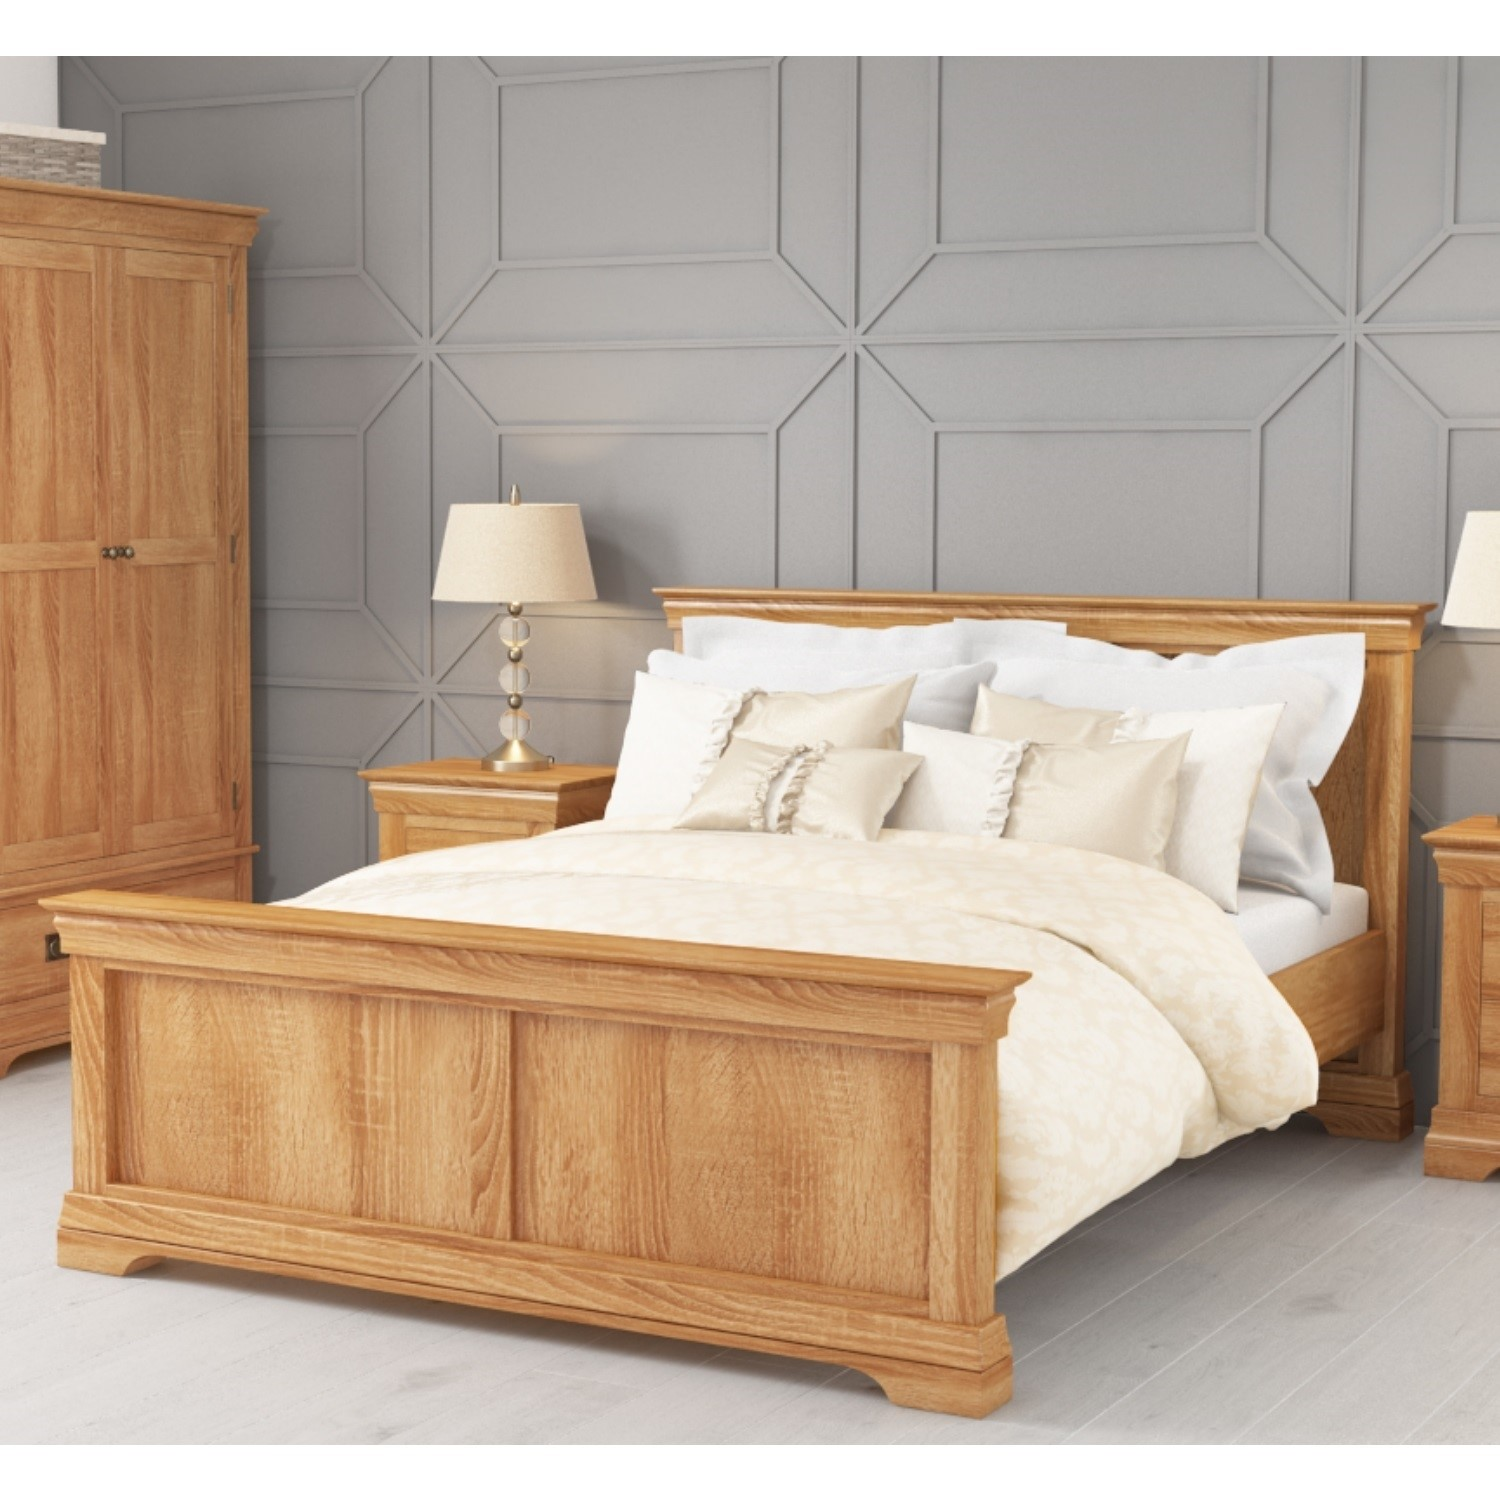 watch 3c5a4 6358c Details about Solid Oak Wood King Size Bed Frame Wooden 5ft Farmhouse Style